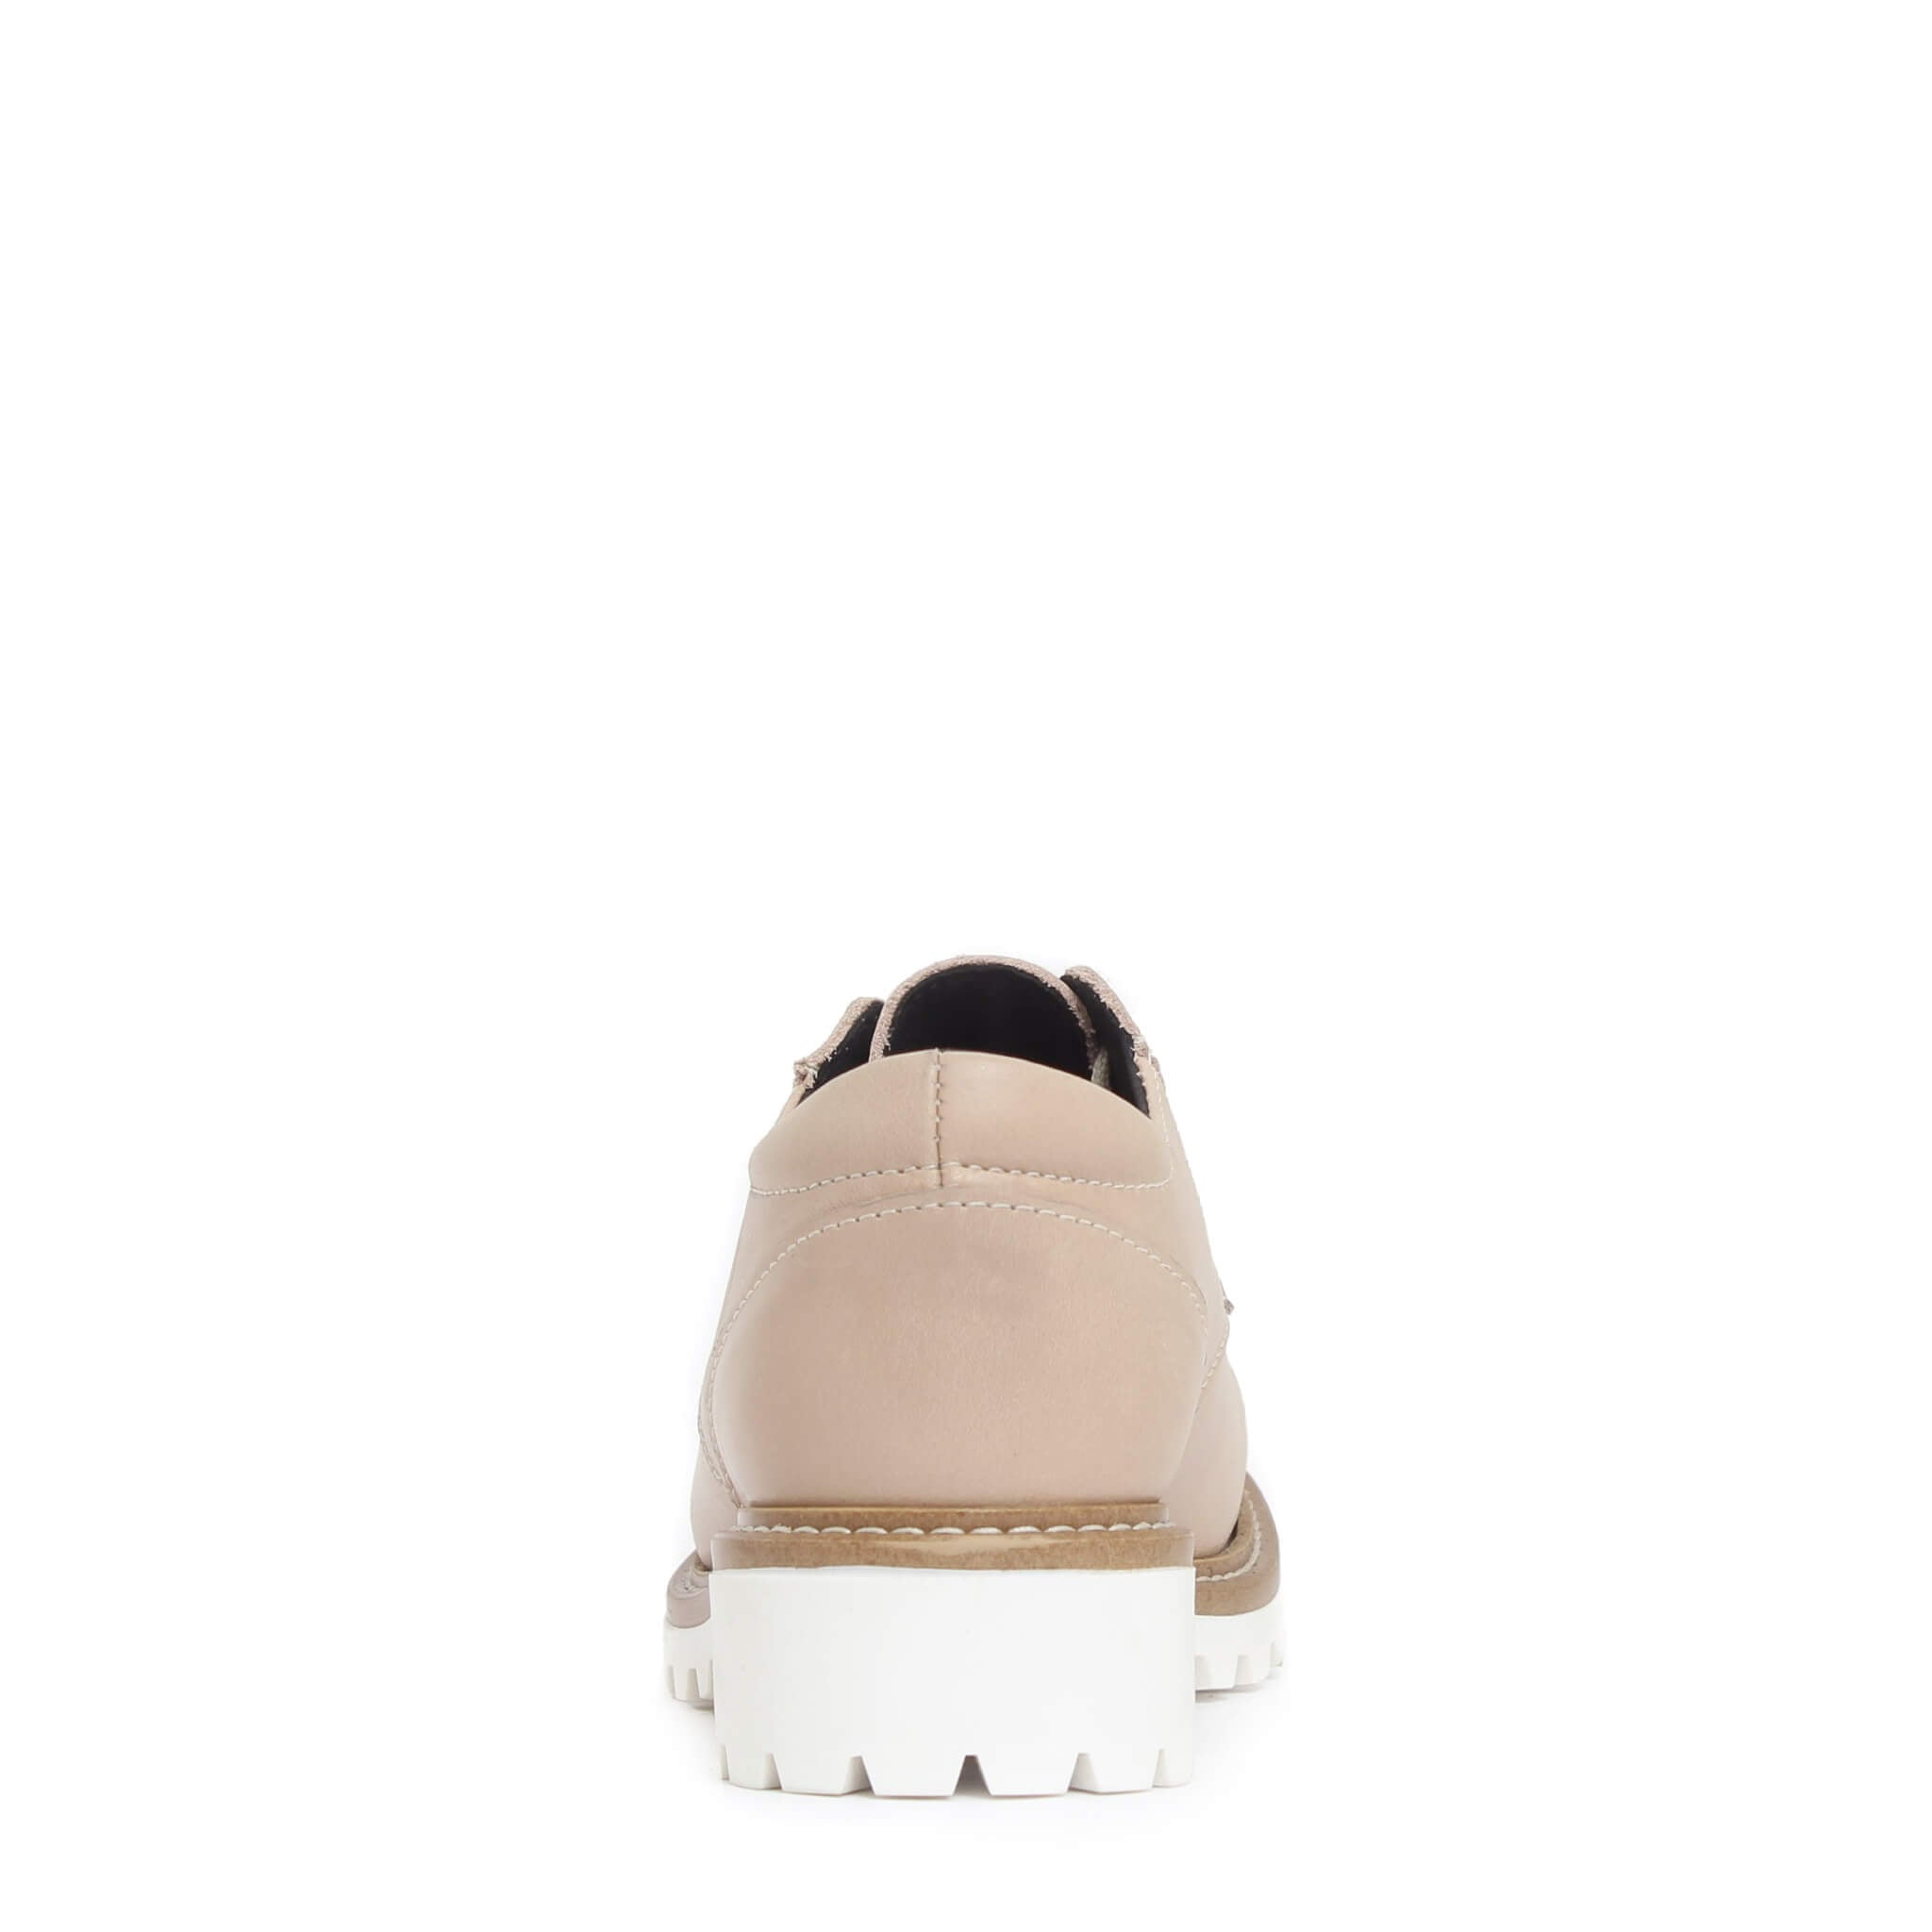 Chaussures Jinny Nude pour femme